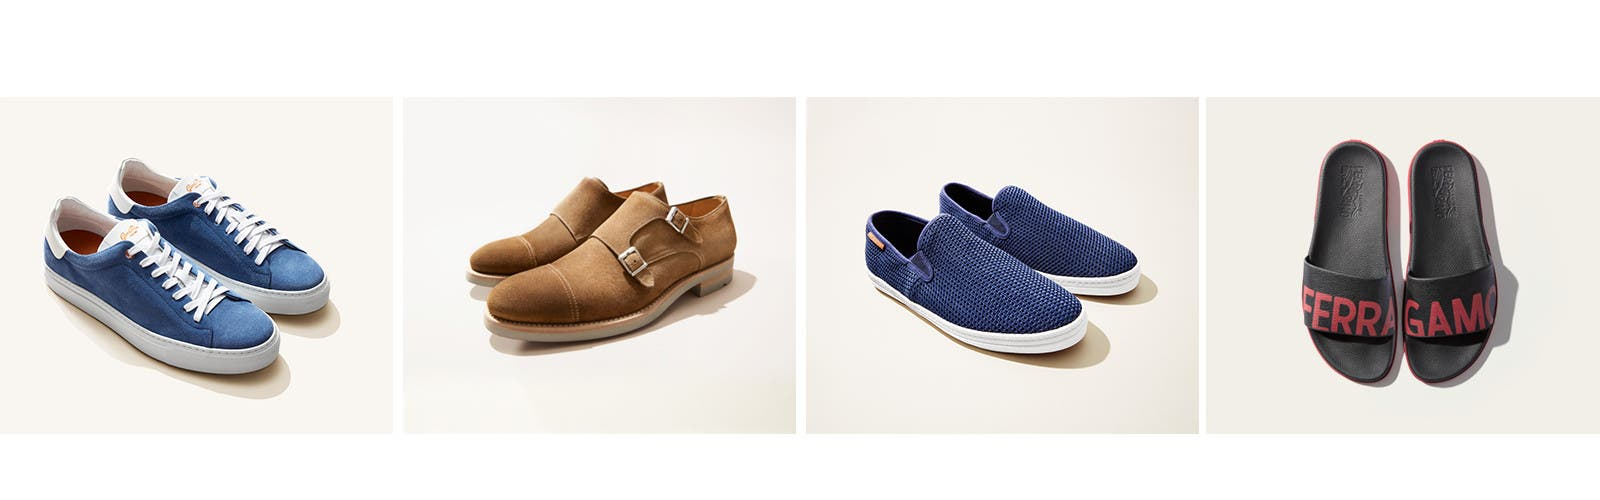 New men's shoes for spring.